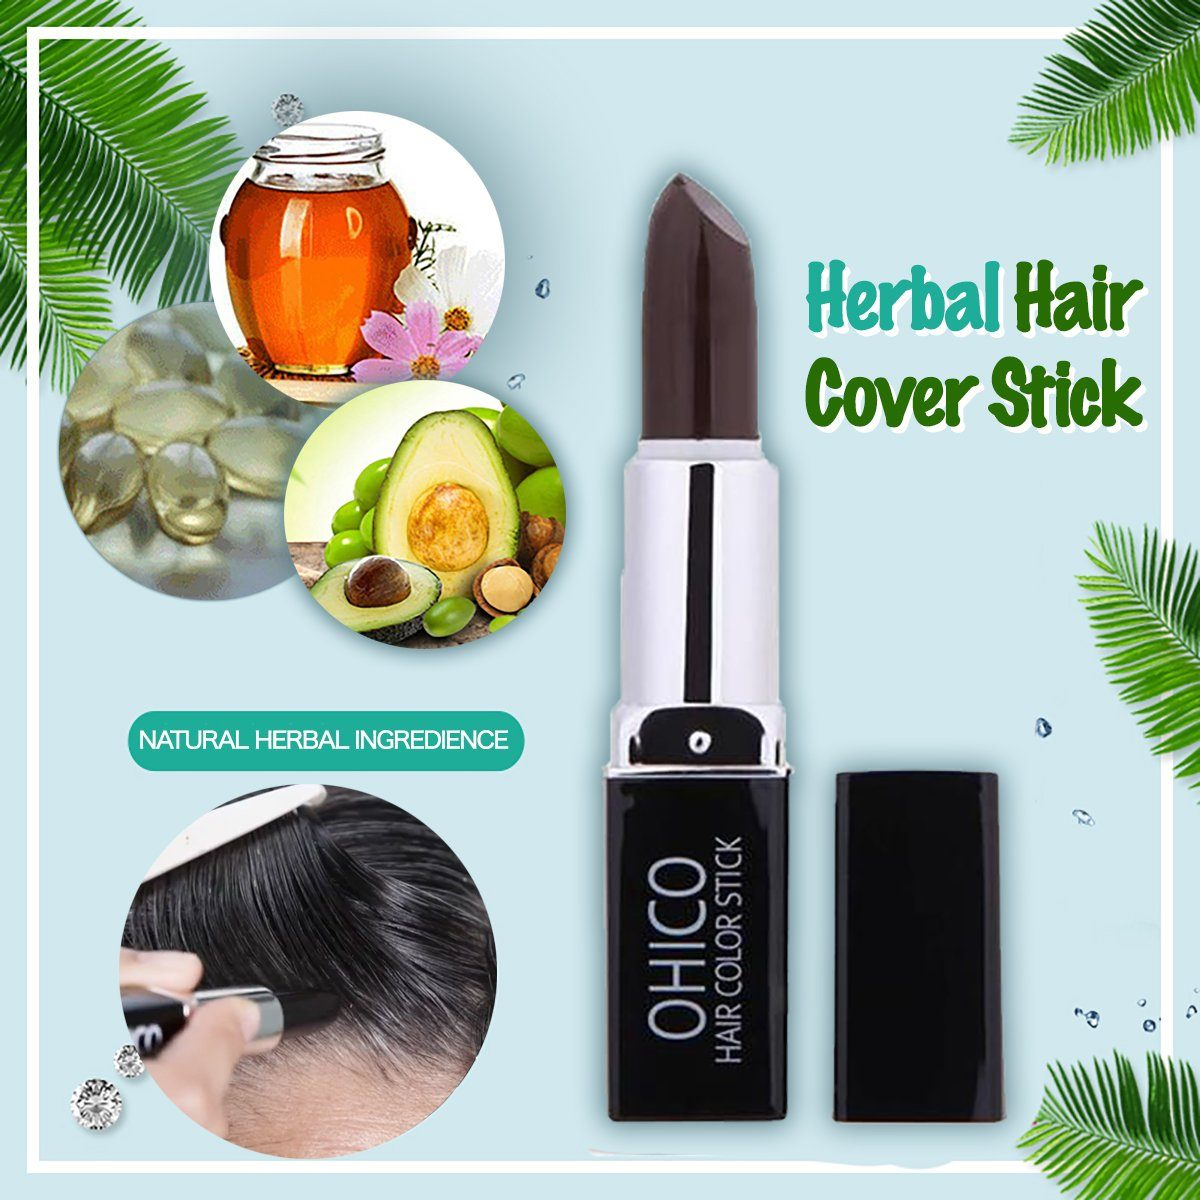 Herbal Hair Cover Stick